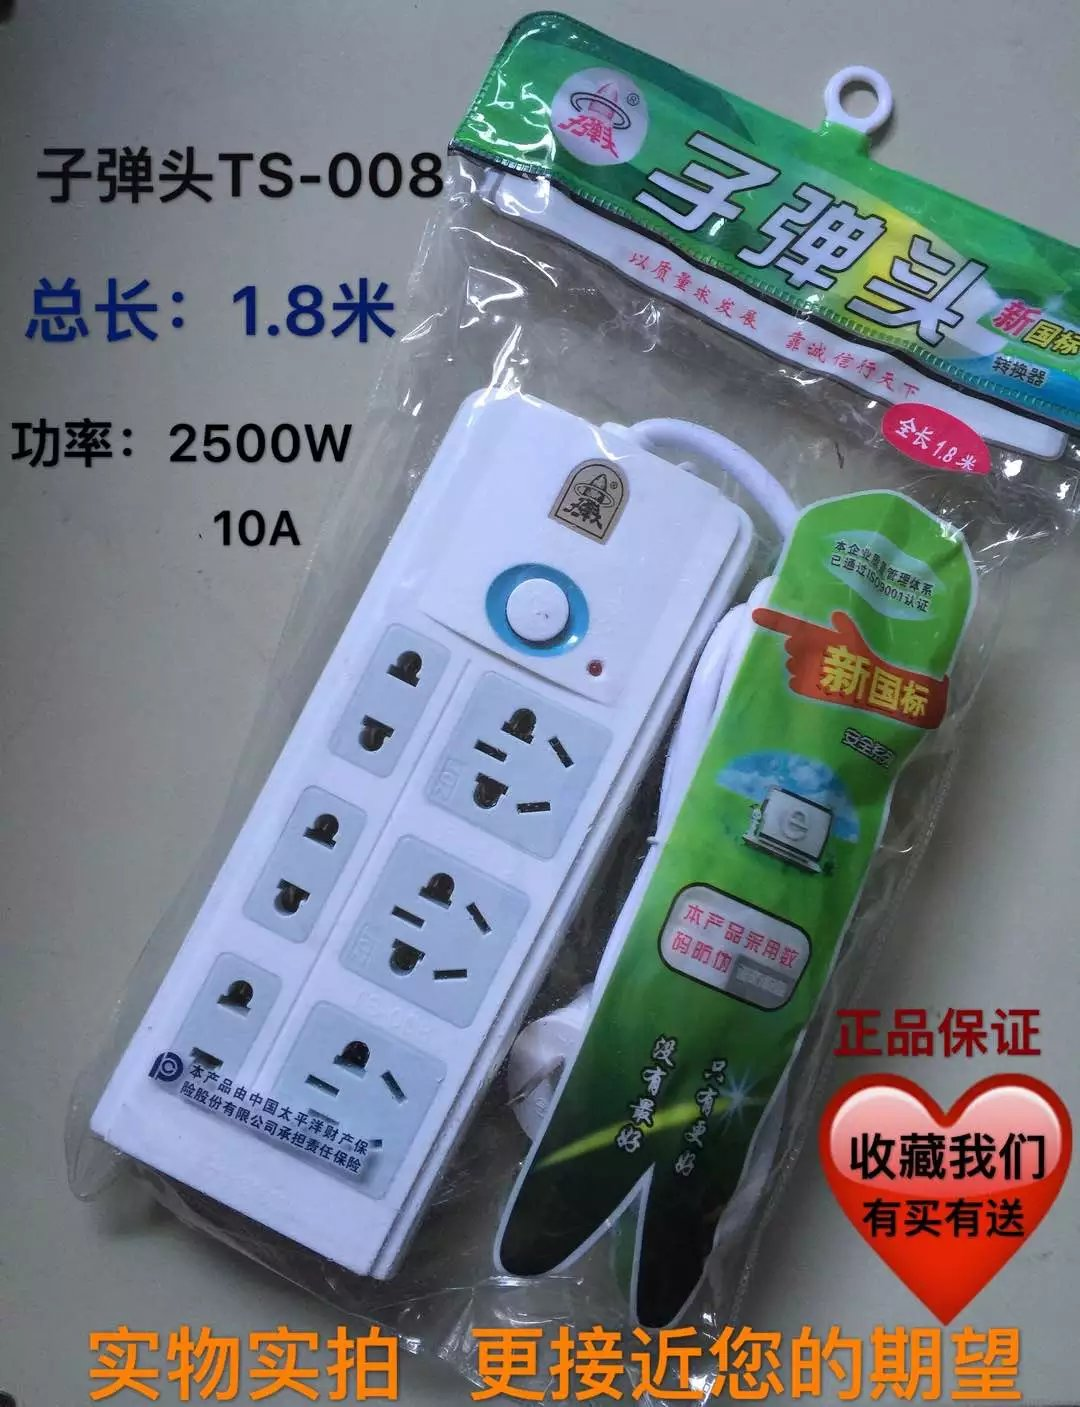 Categoryconnector Plugproductname2 Minus 5 Yuan Shipping Bullet Electronic Wiring Board 2 Ts 102 008 Socket